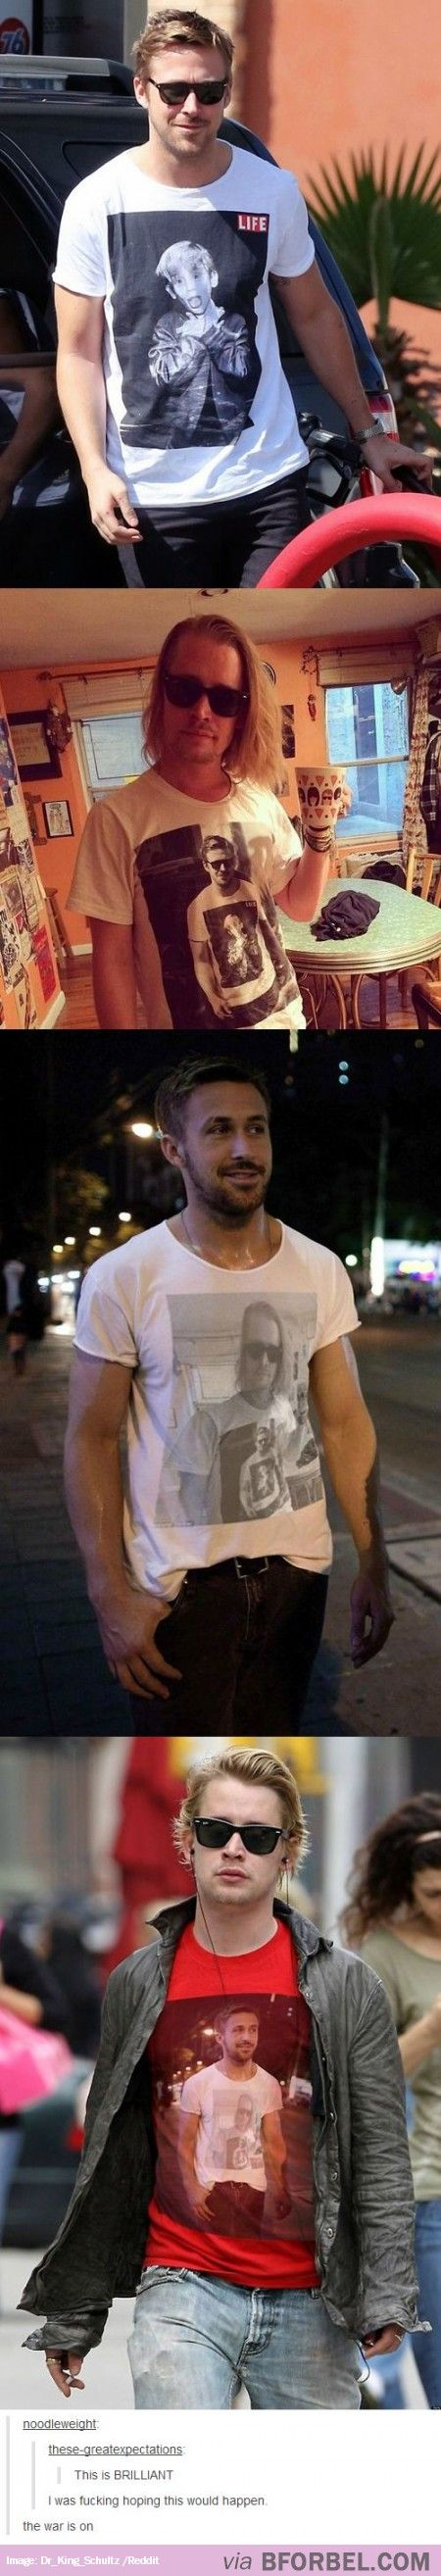 Your move, Gosling...